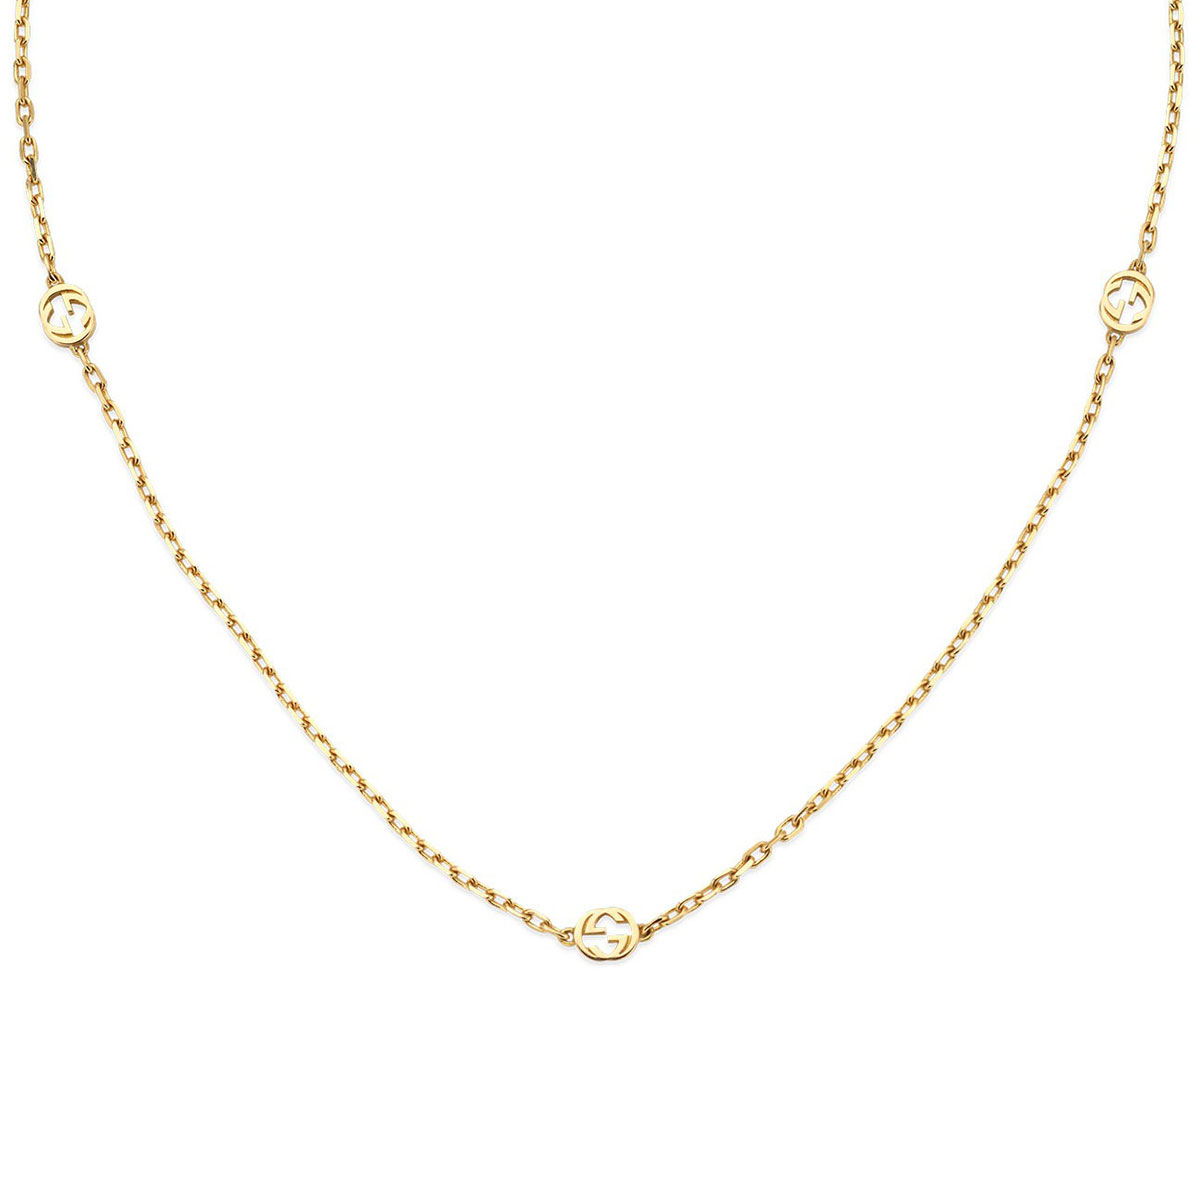 Gucci Interlocking G Yellow Gold Necklace